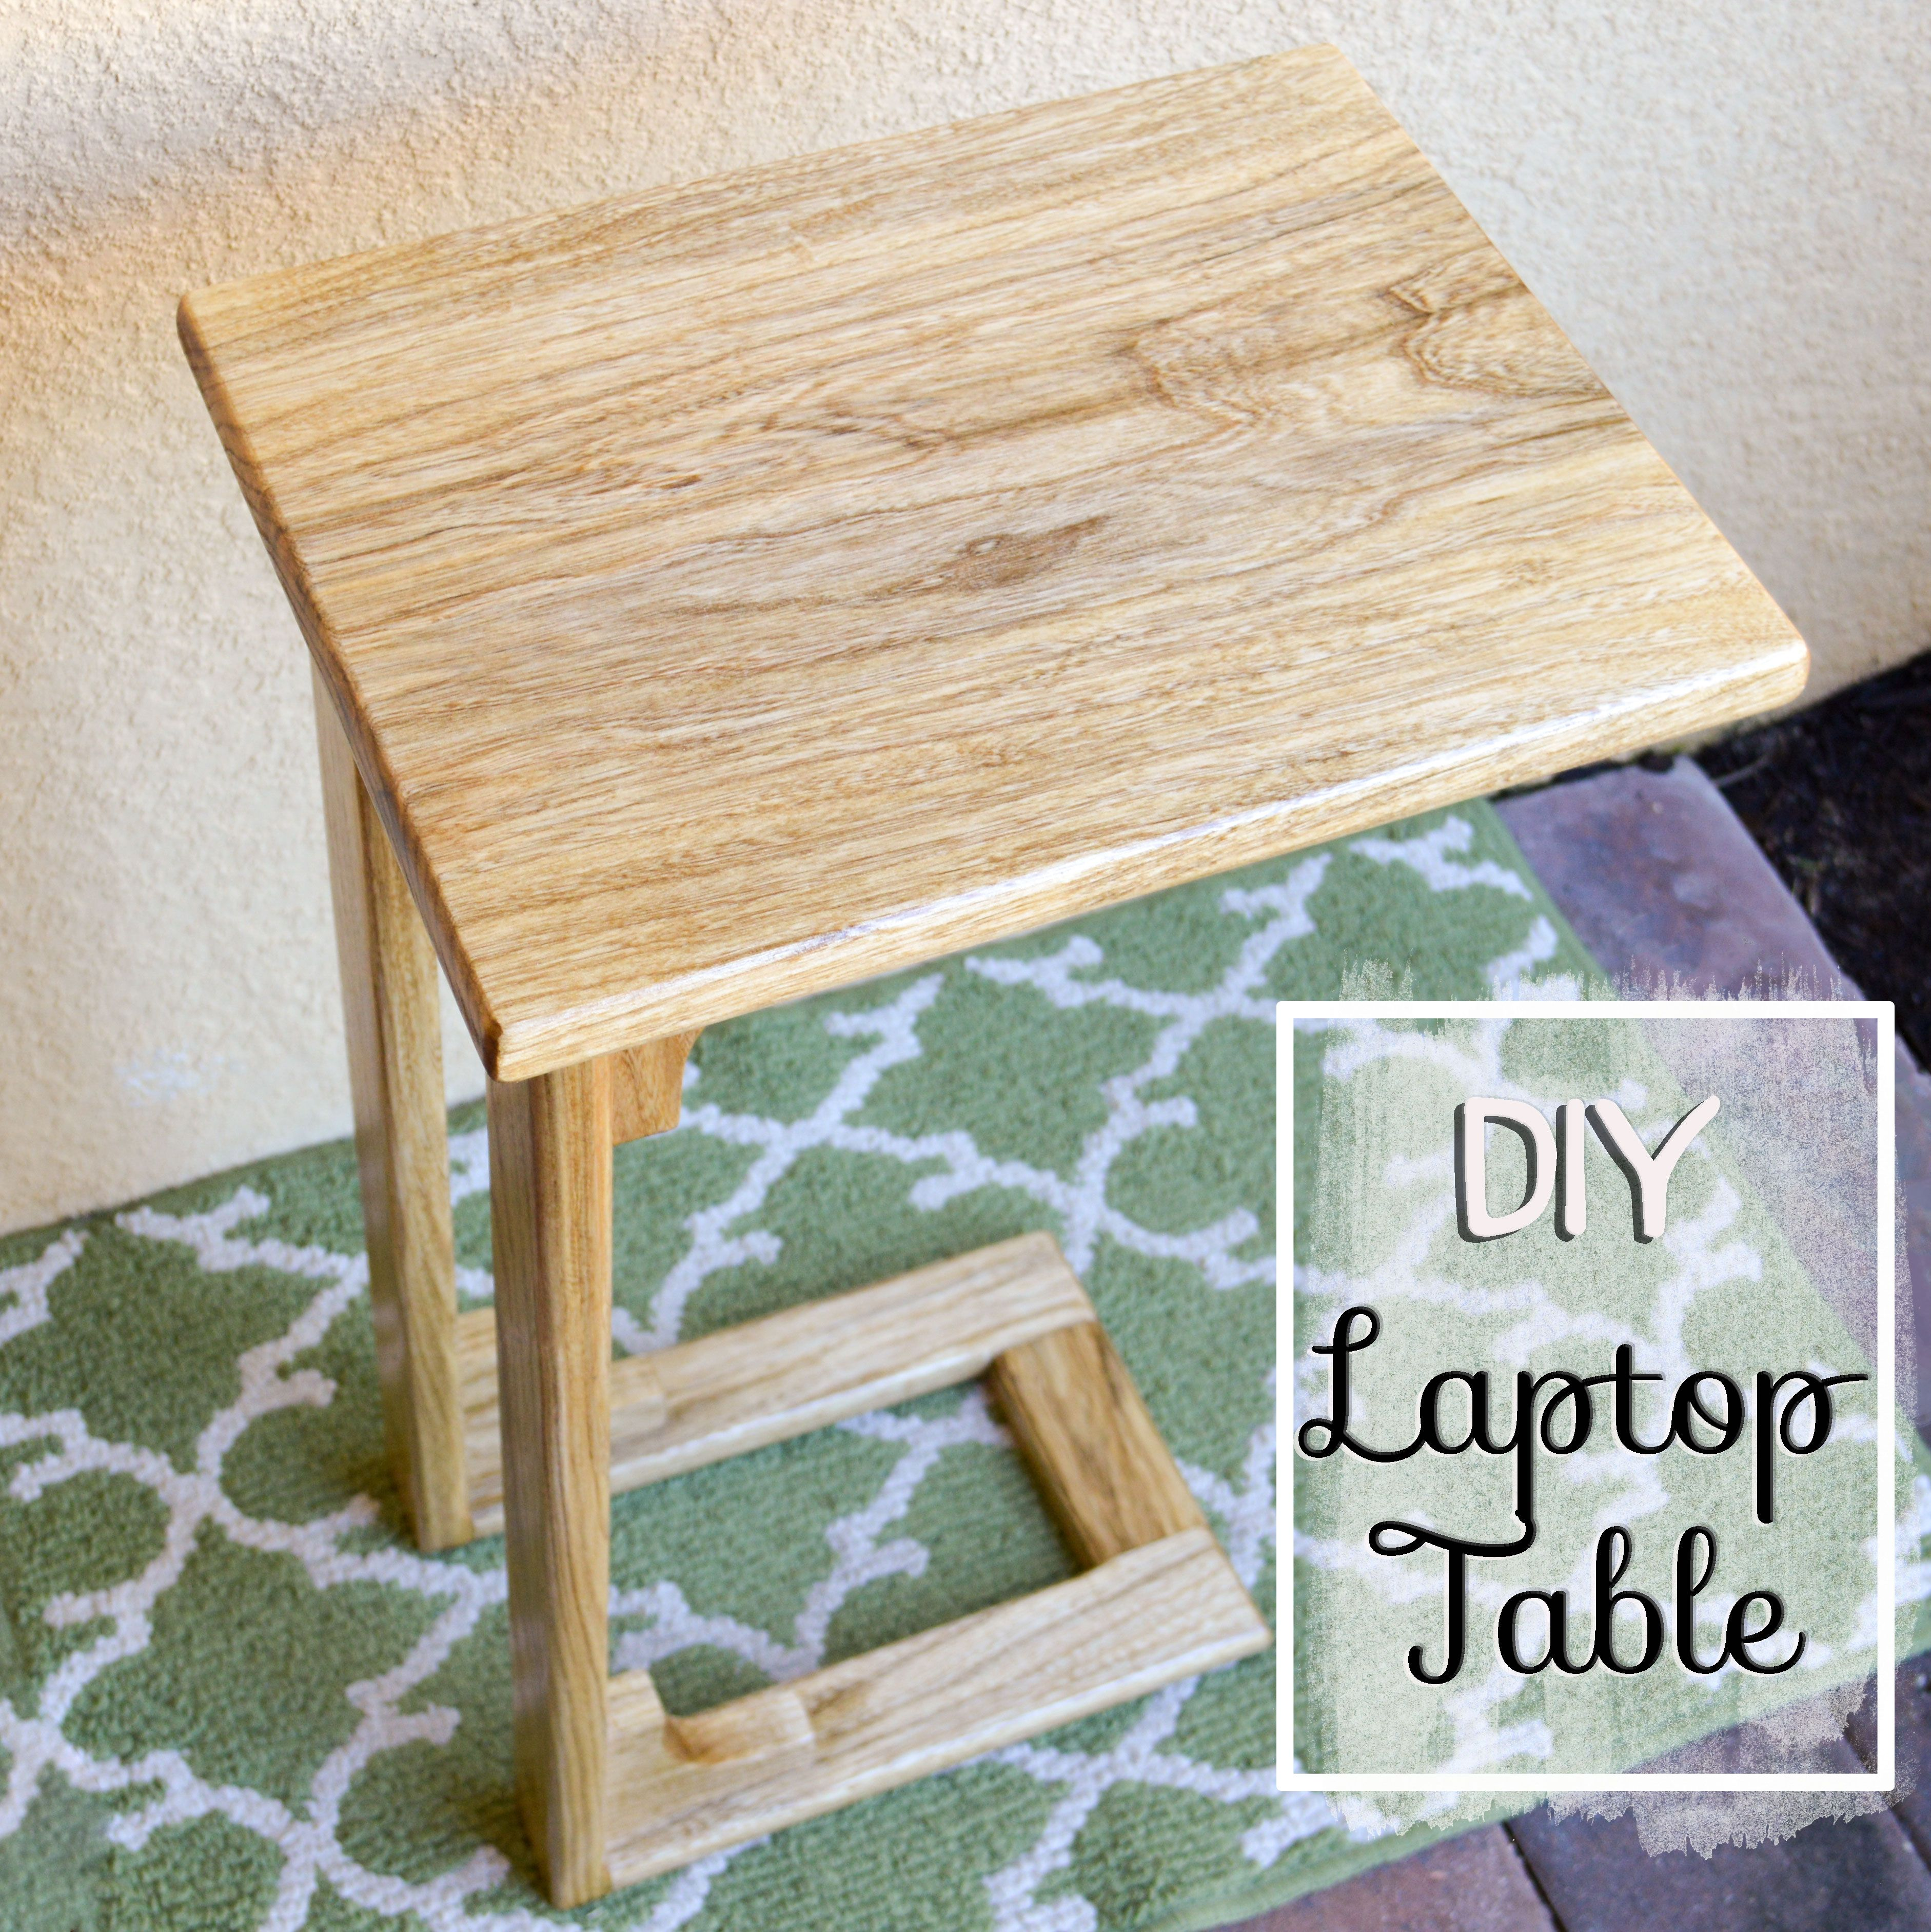 Table from a single 1 x 8 board see more diy twisty side table - Diy Laptop Table More